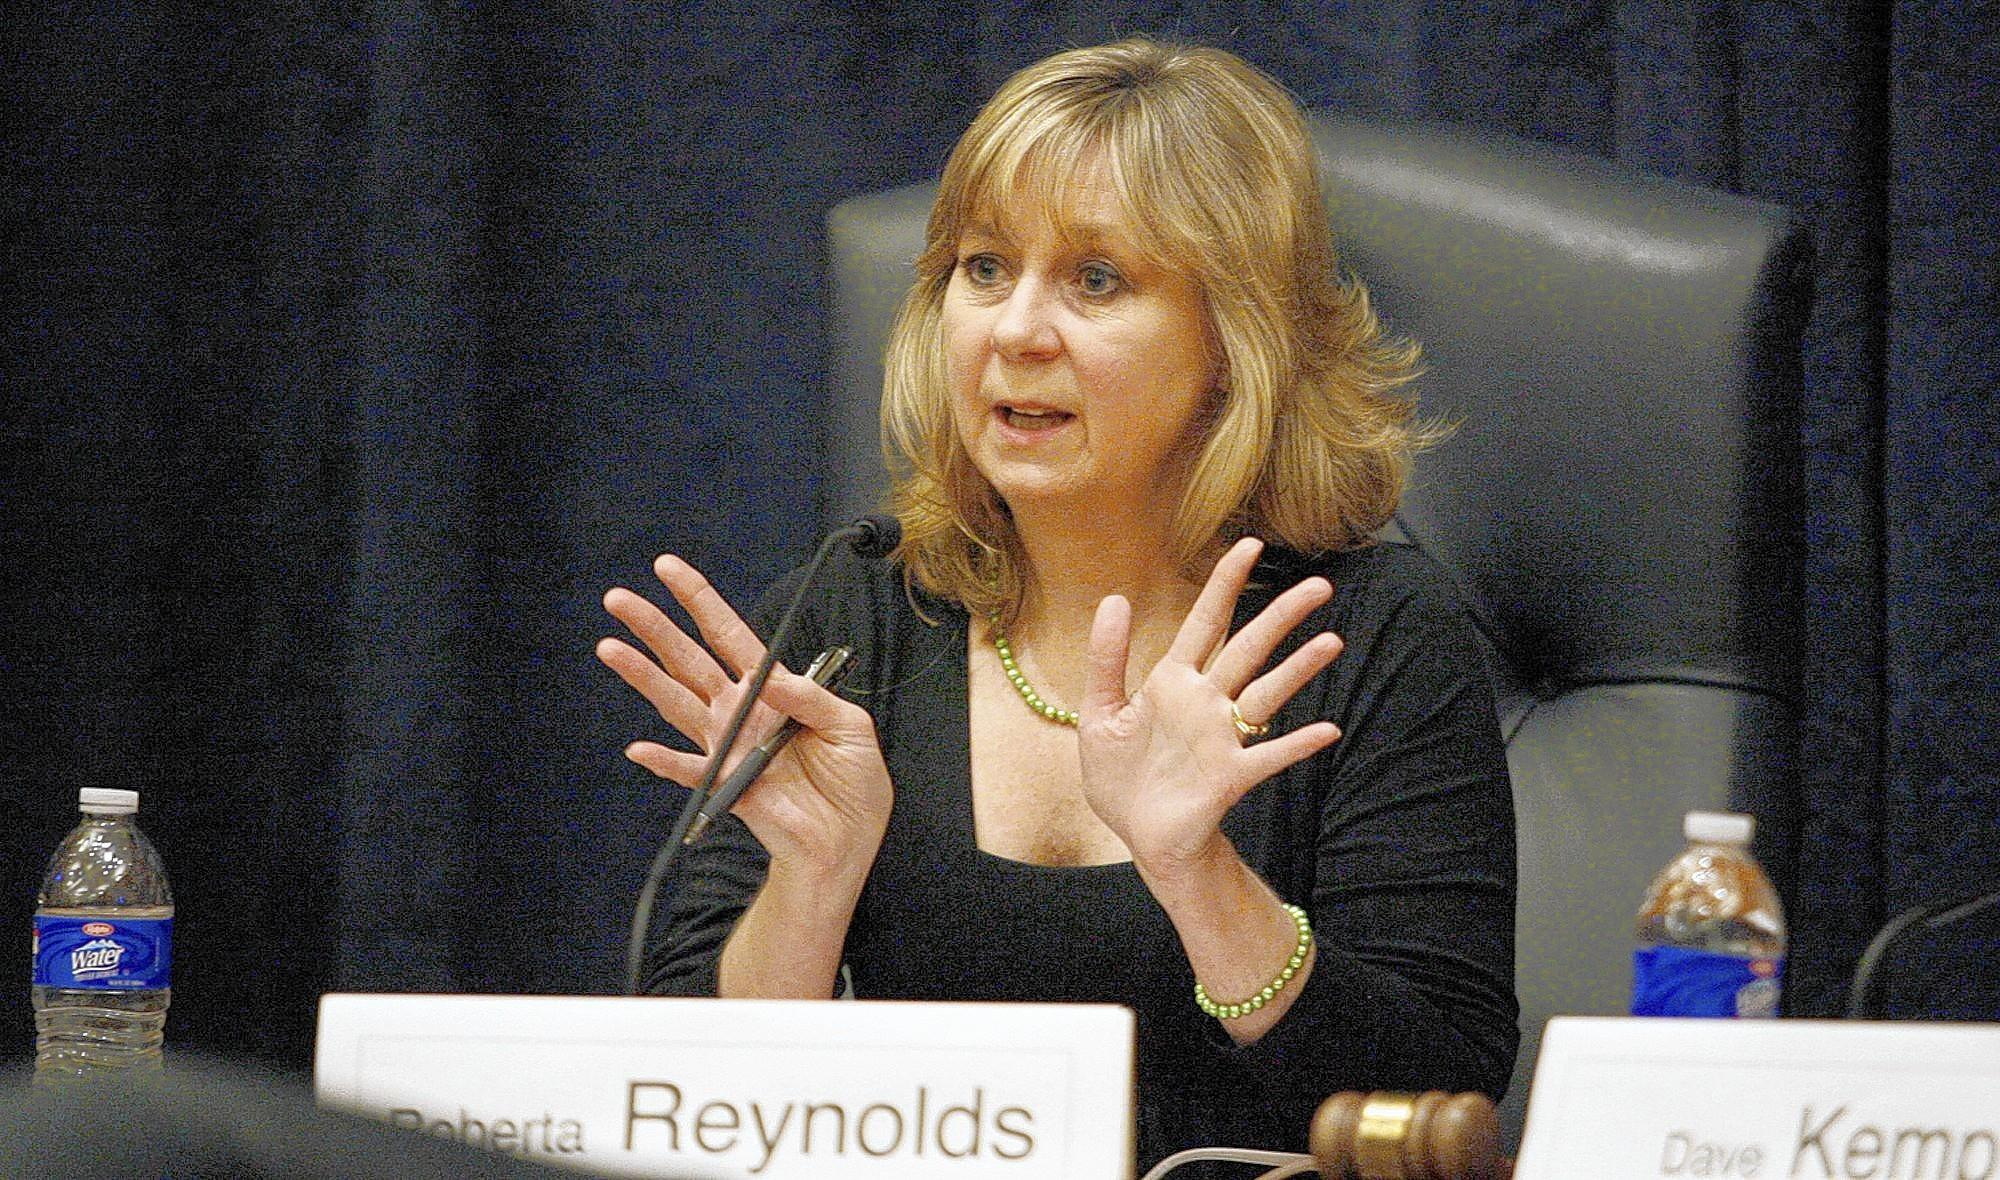 File Photo: Burbank School Board's Roberta Reynolds attends a candidates forum, which took place at Burbank City Hall on Wednesday, Jan. 20, 2011.